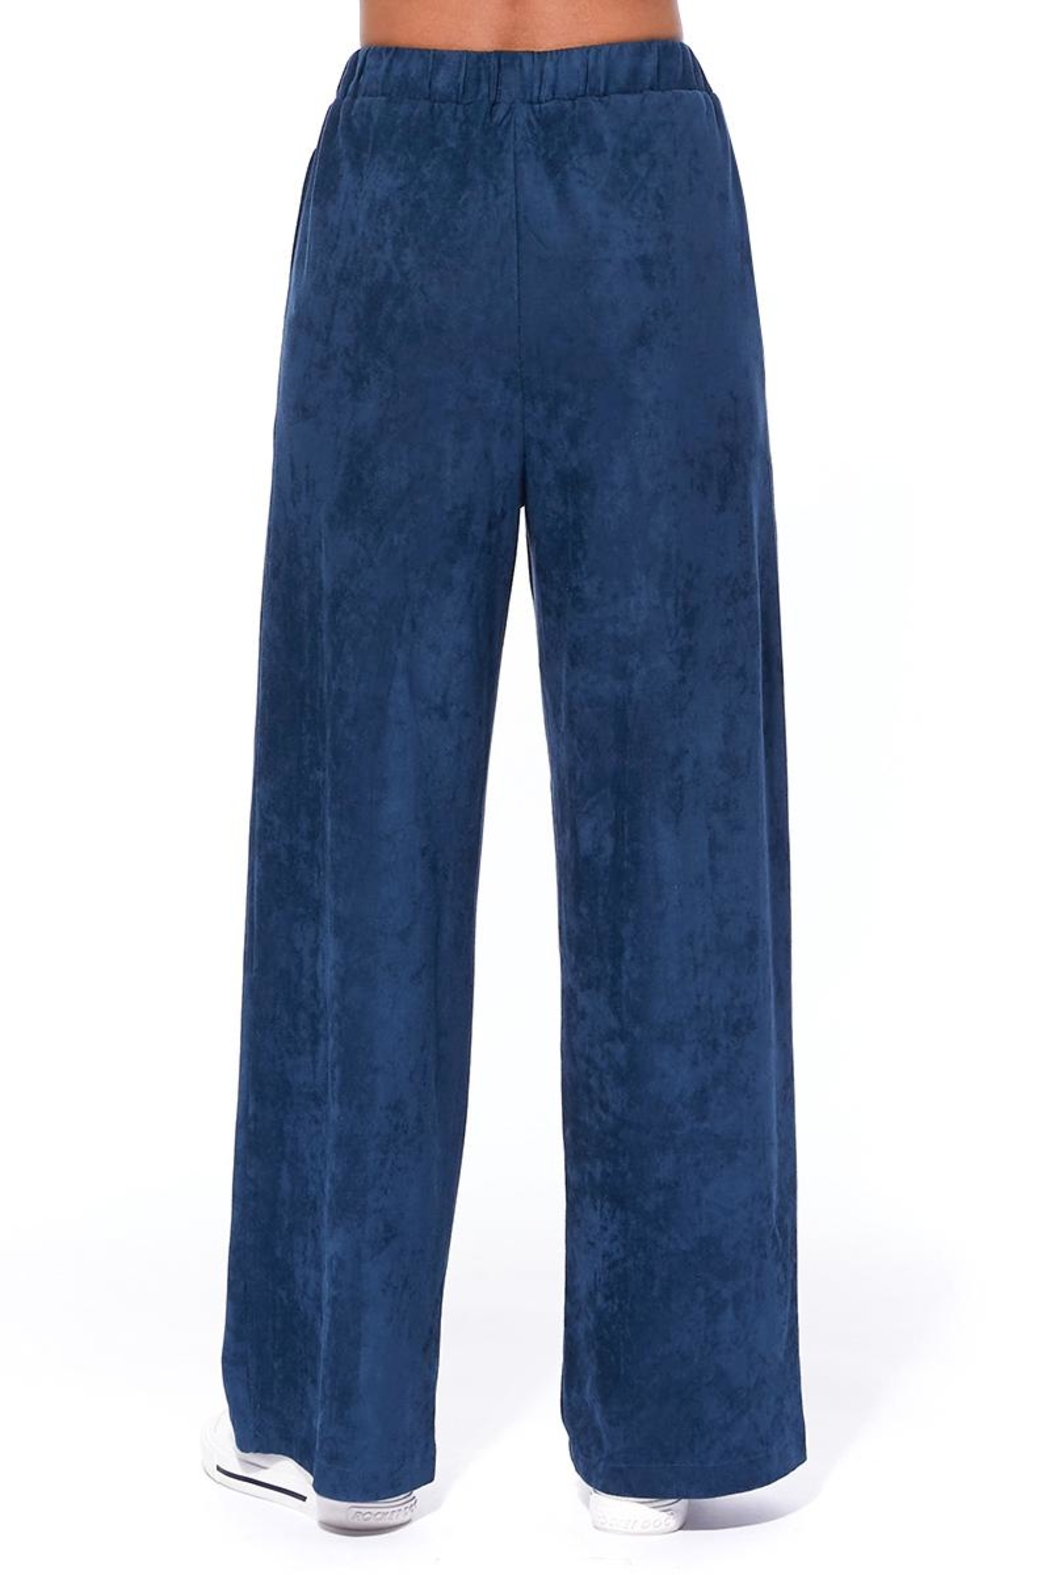 Aryeh Navy Faux Suede Pants - Back Cropped Image